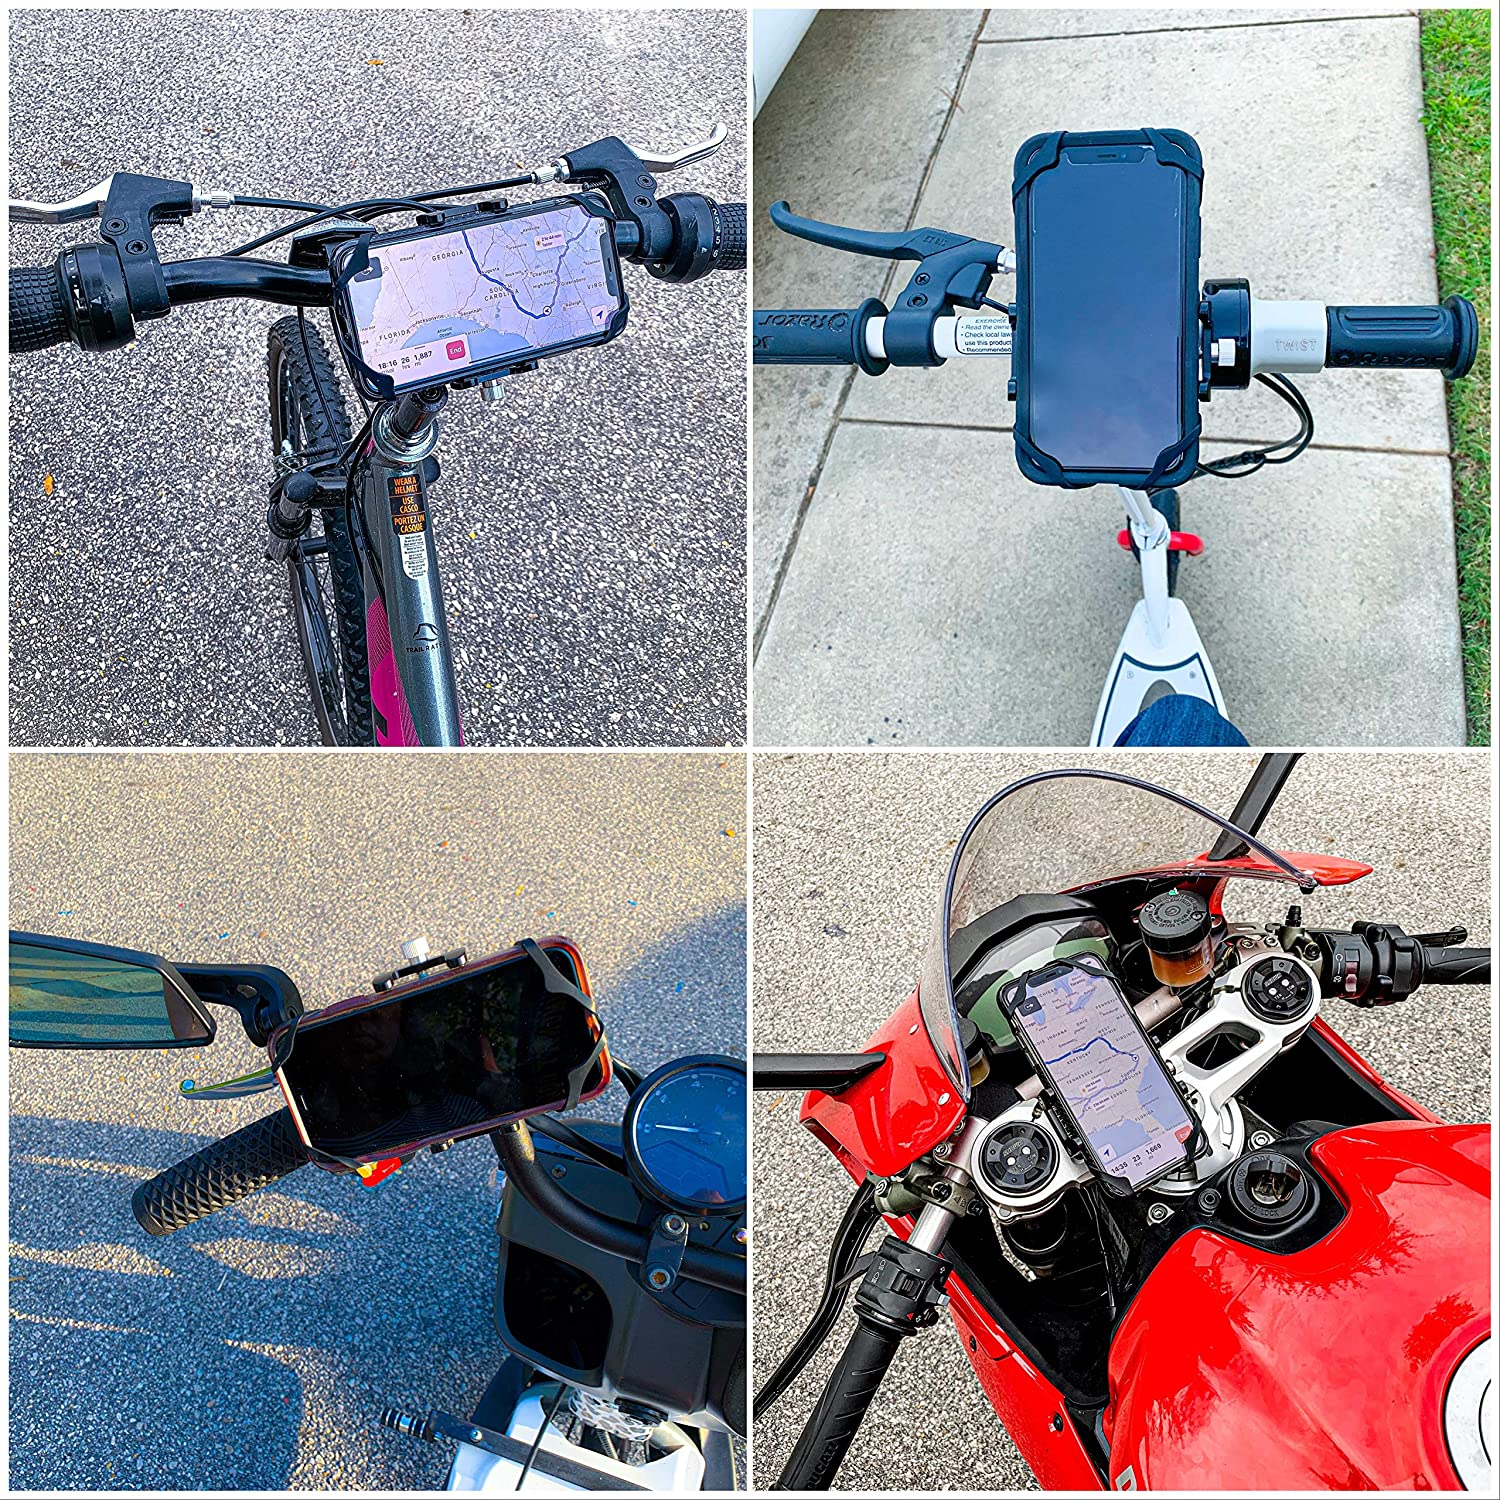 HiGrip Bicycle Accessories for iPhone 7 8 9 X XR XS 11 Plus Pro Max Samsung Galaxy Note 10 20 S6 S7 S8 S9 S10 S20 Metal Bike Phone Mount Aluminum Motorcycle Phone Holder with Safety Band